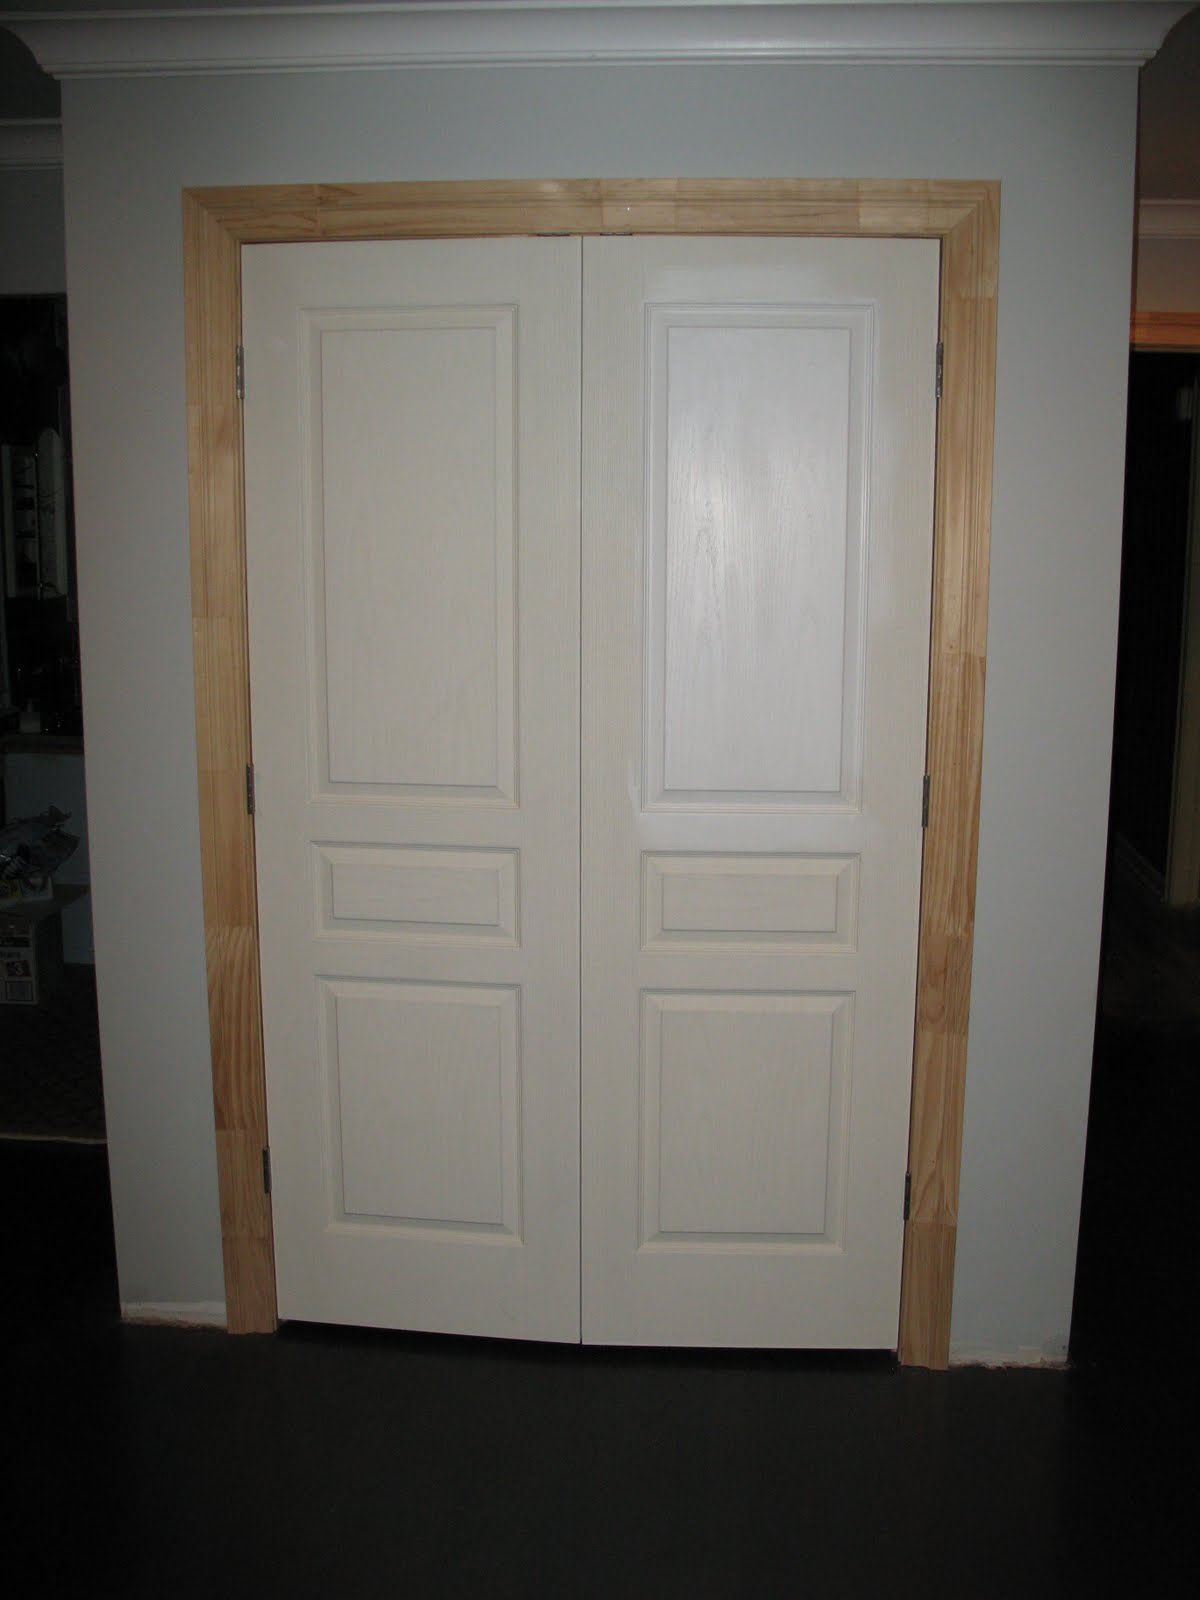 Just As Exciting The Closet Doors Is System Itself That We Ordered From EasyClosets How About A Product Review